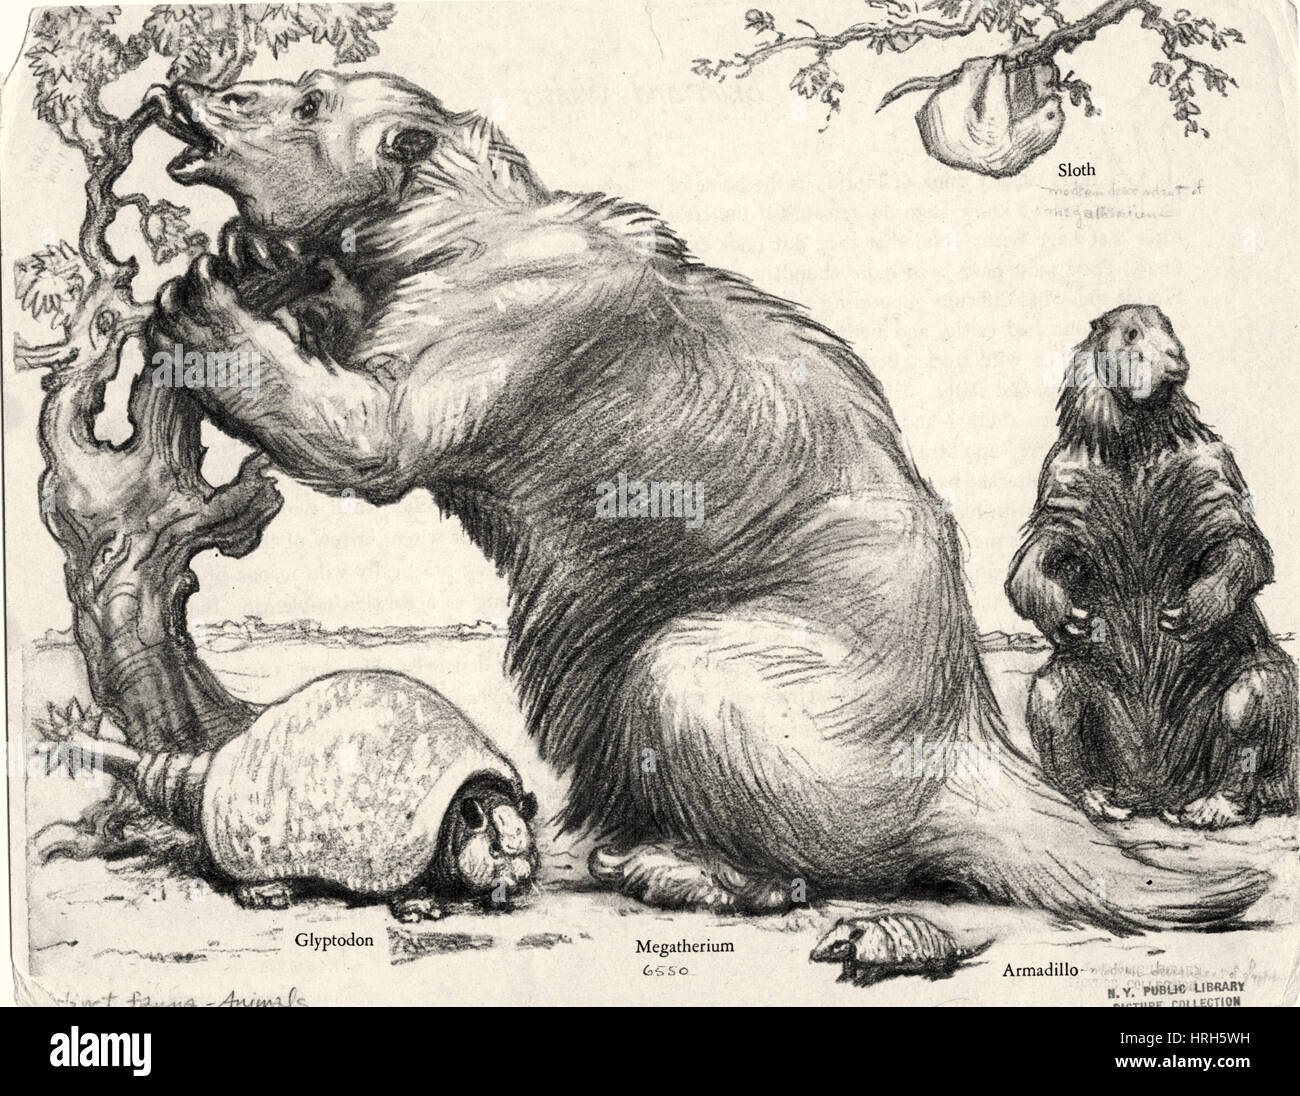 glyptodon and megatherium extinct fauna stock image